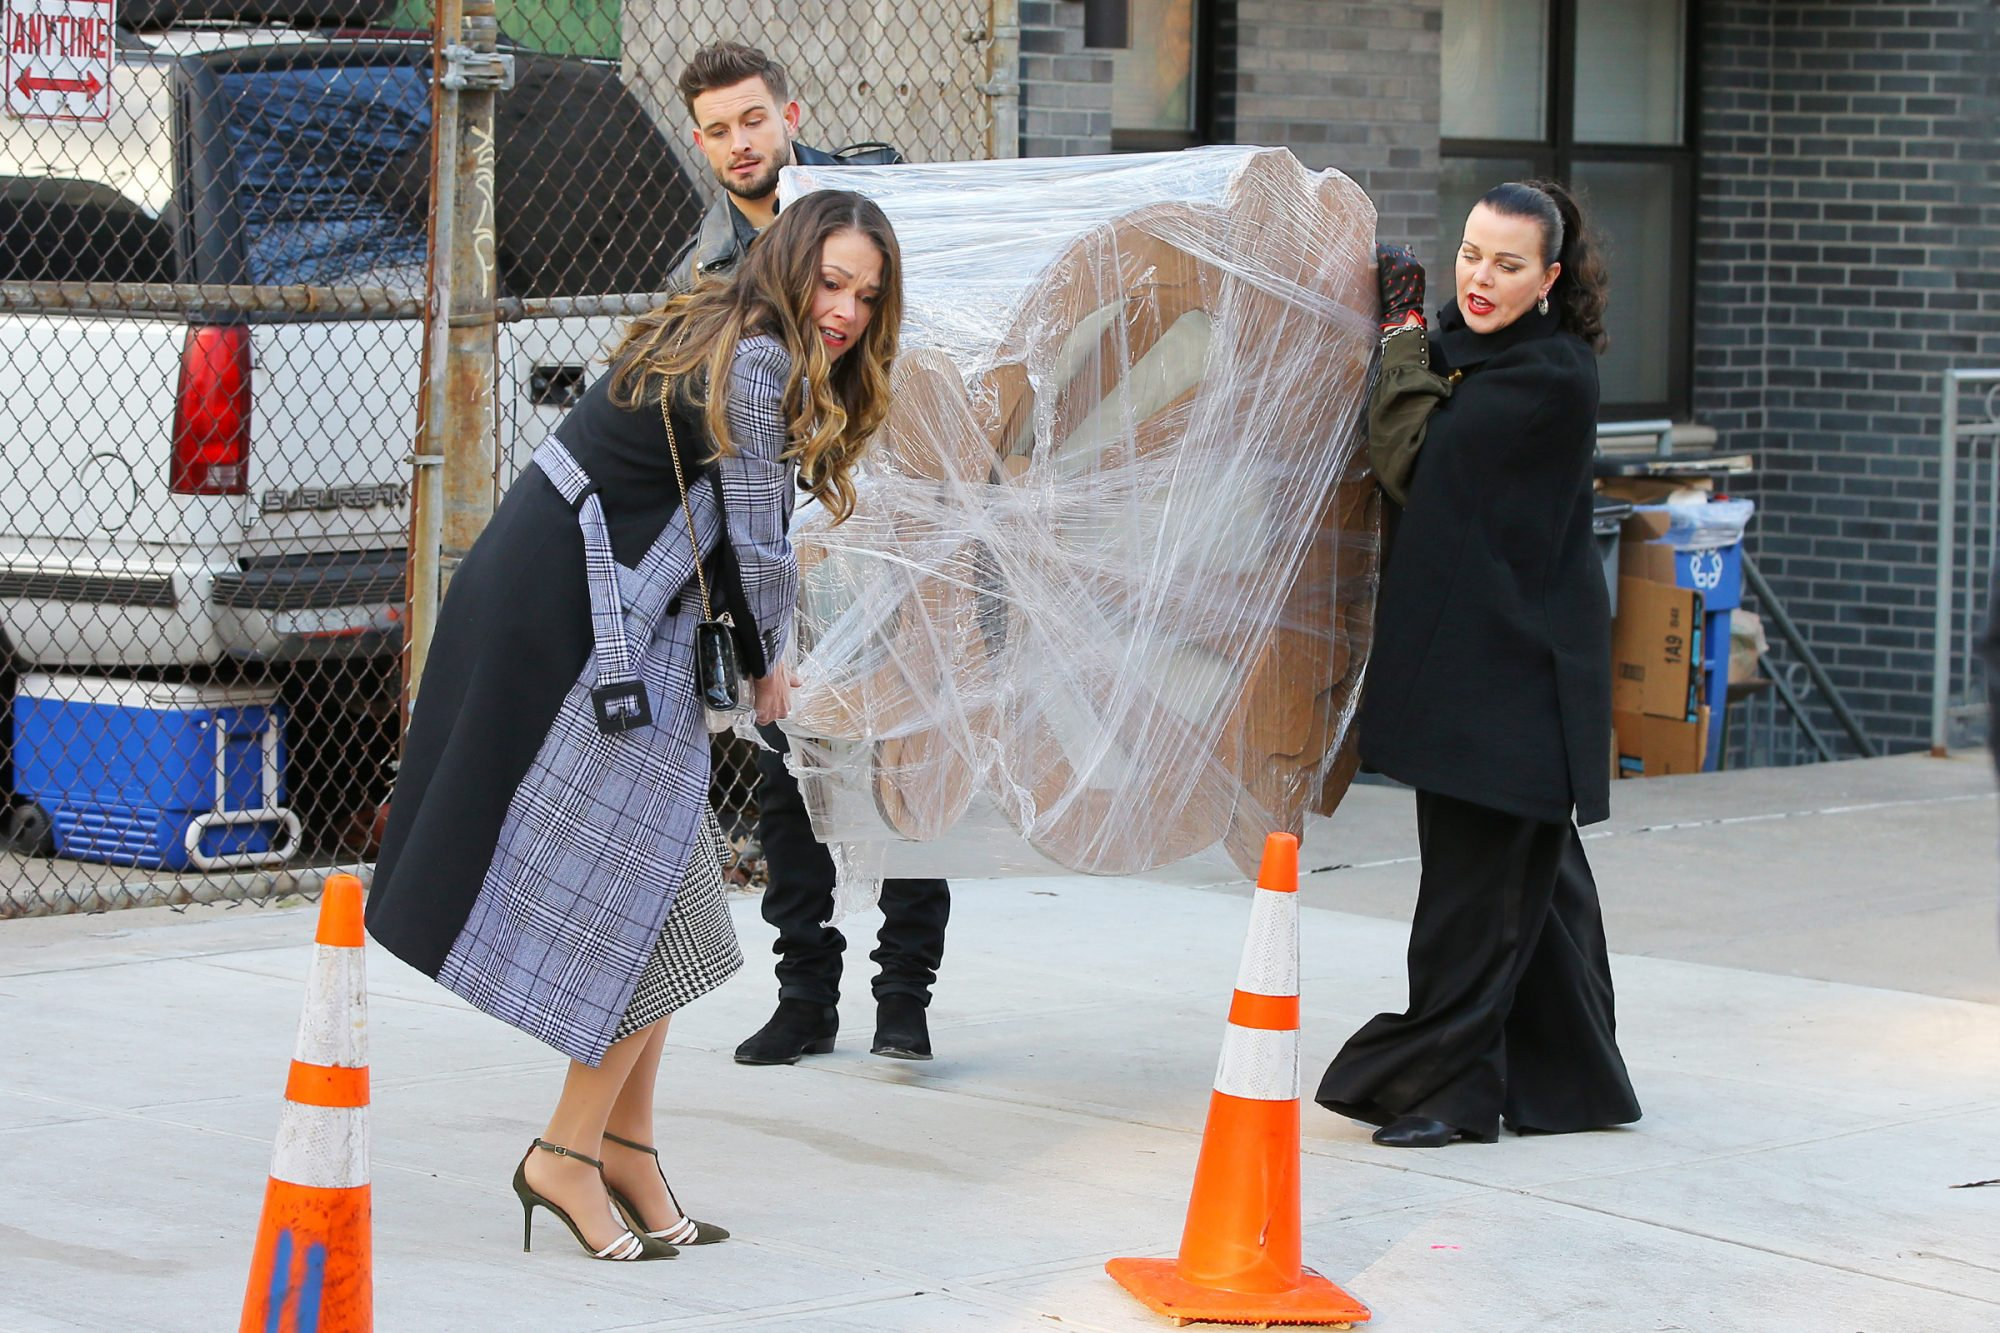 Sutton Foster, Debi Mazar and Nic Tortorella struggle to carry a giant work of art and nearly drop it filming 'Younger' in New York City